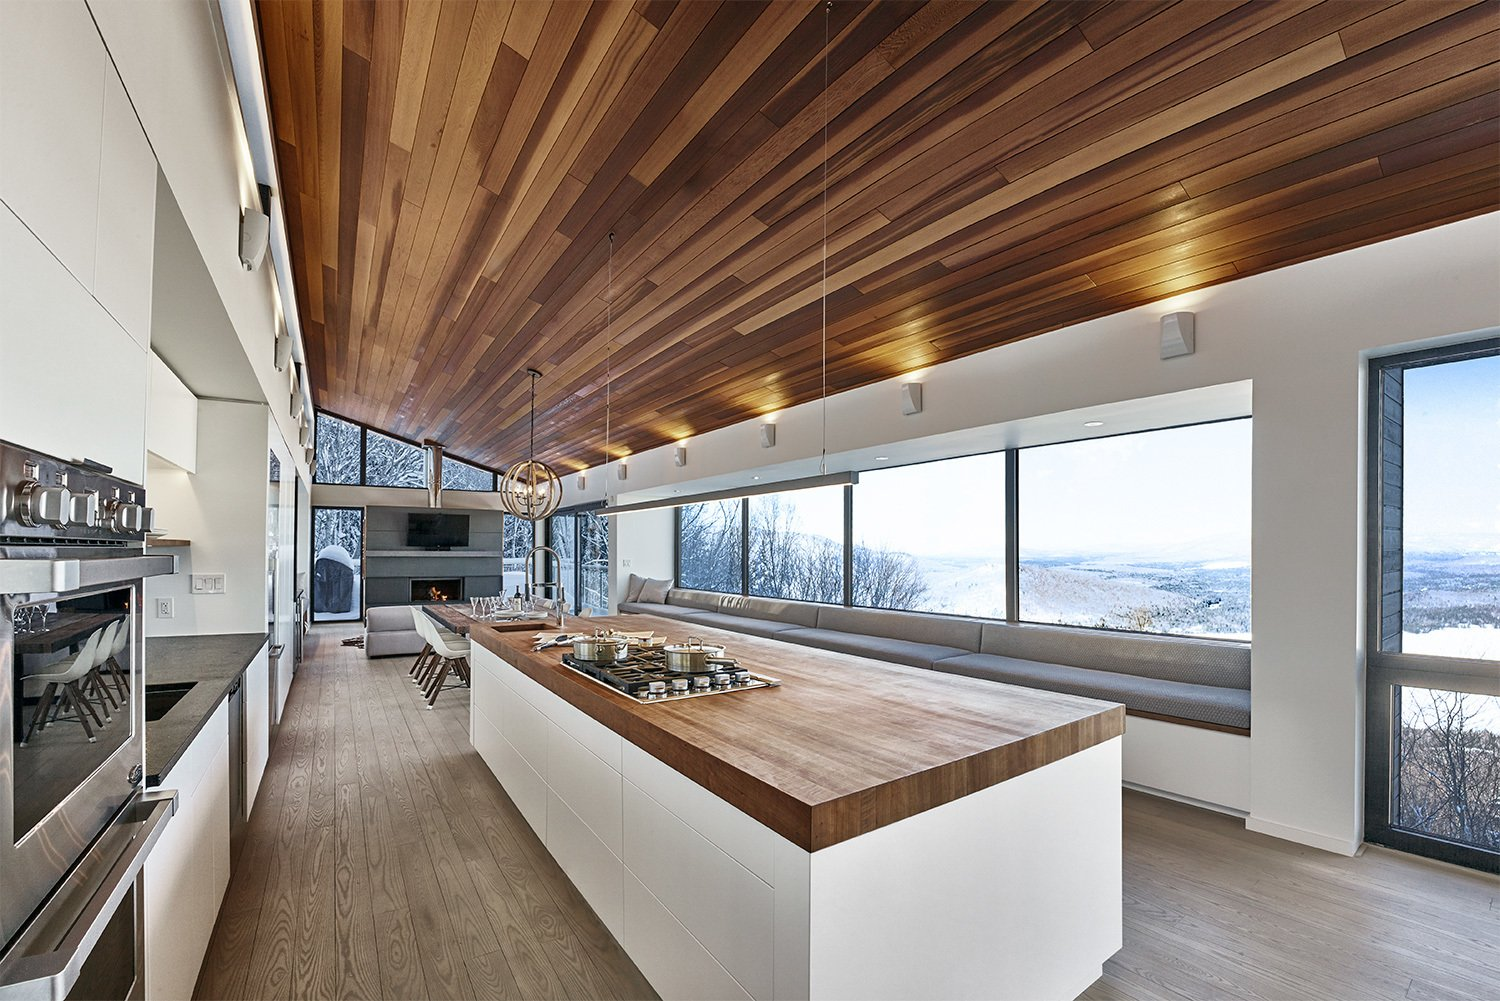 View of kitchen and main bay window upon entry into primary living space.  Laurentian Ski Chalet by RobitailleCurtis